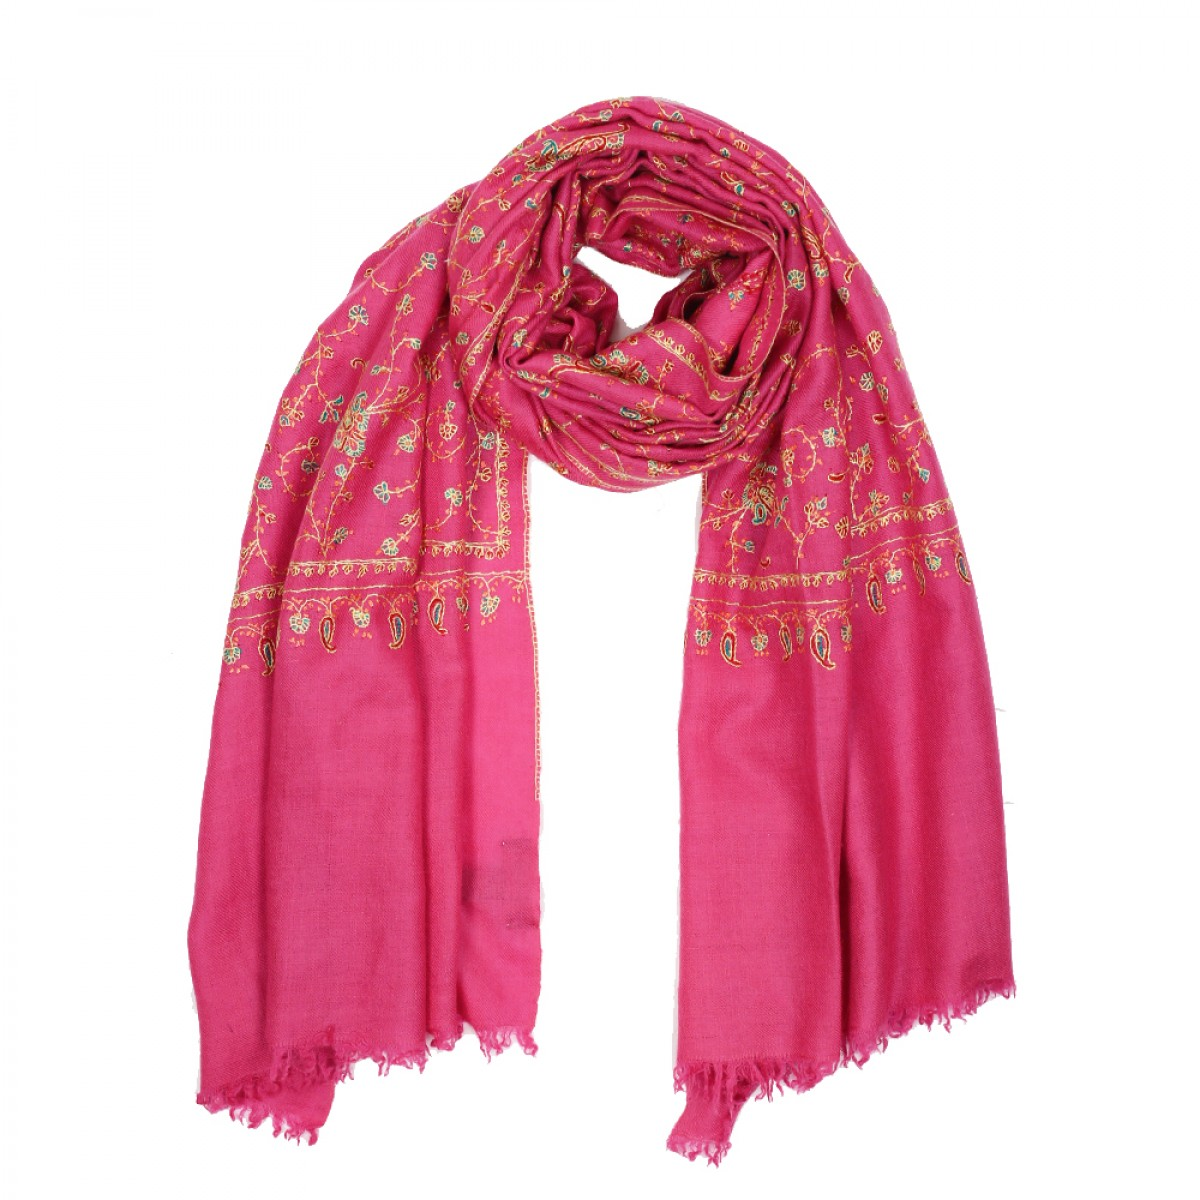 Embroidered Pashmina Stole - Watermelon